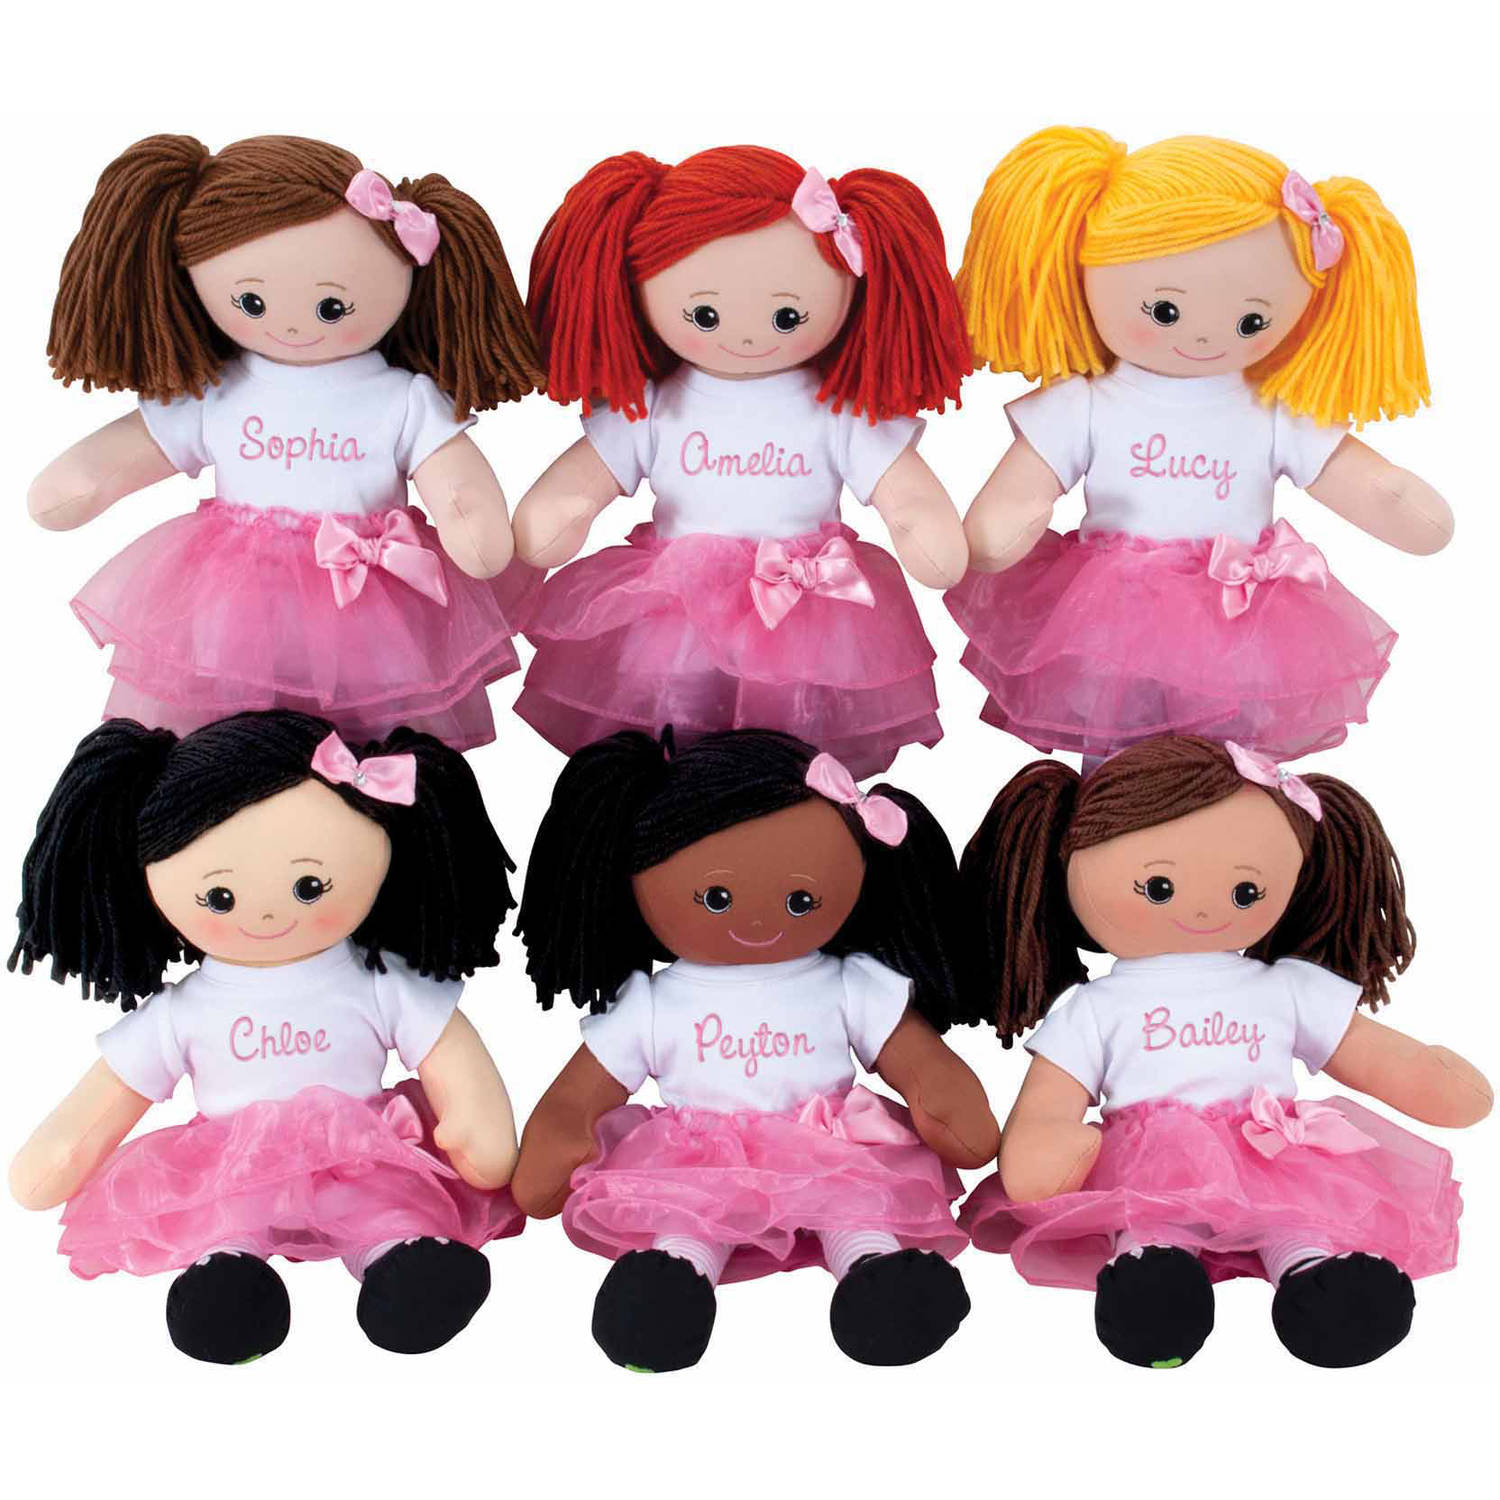 Personalized Girl's Doll With Tutu and Hair Clip